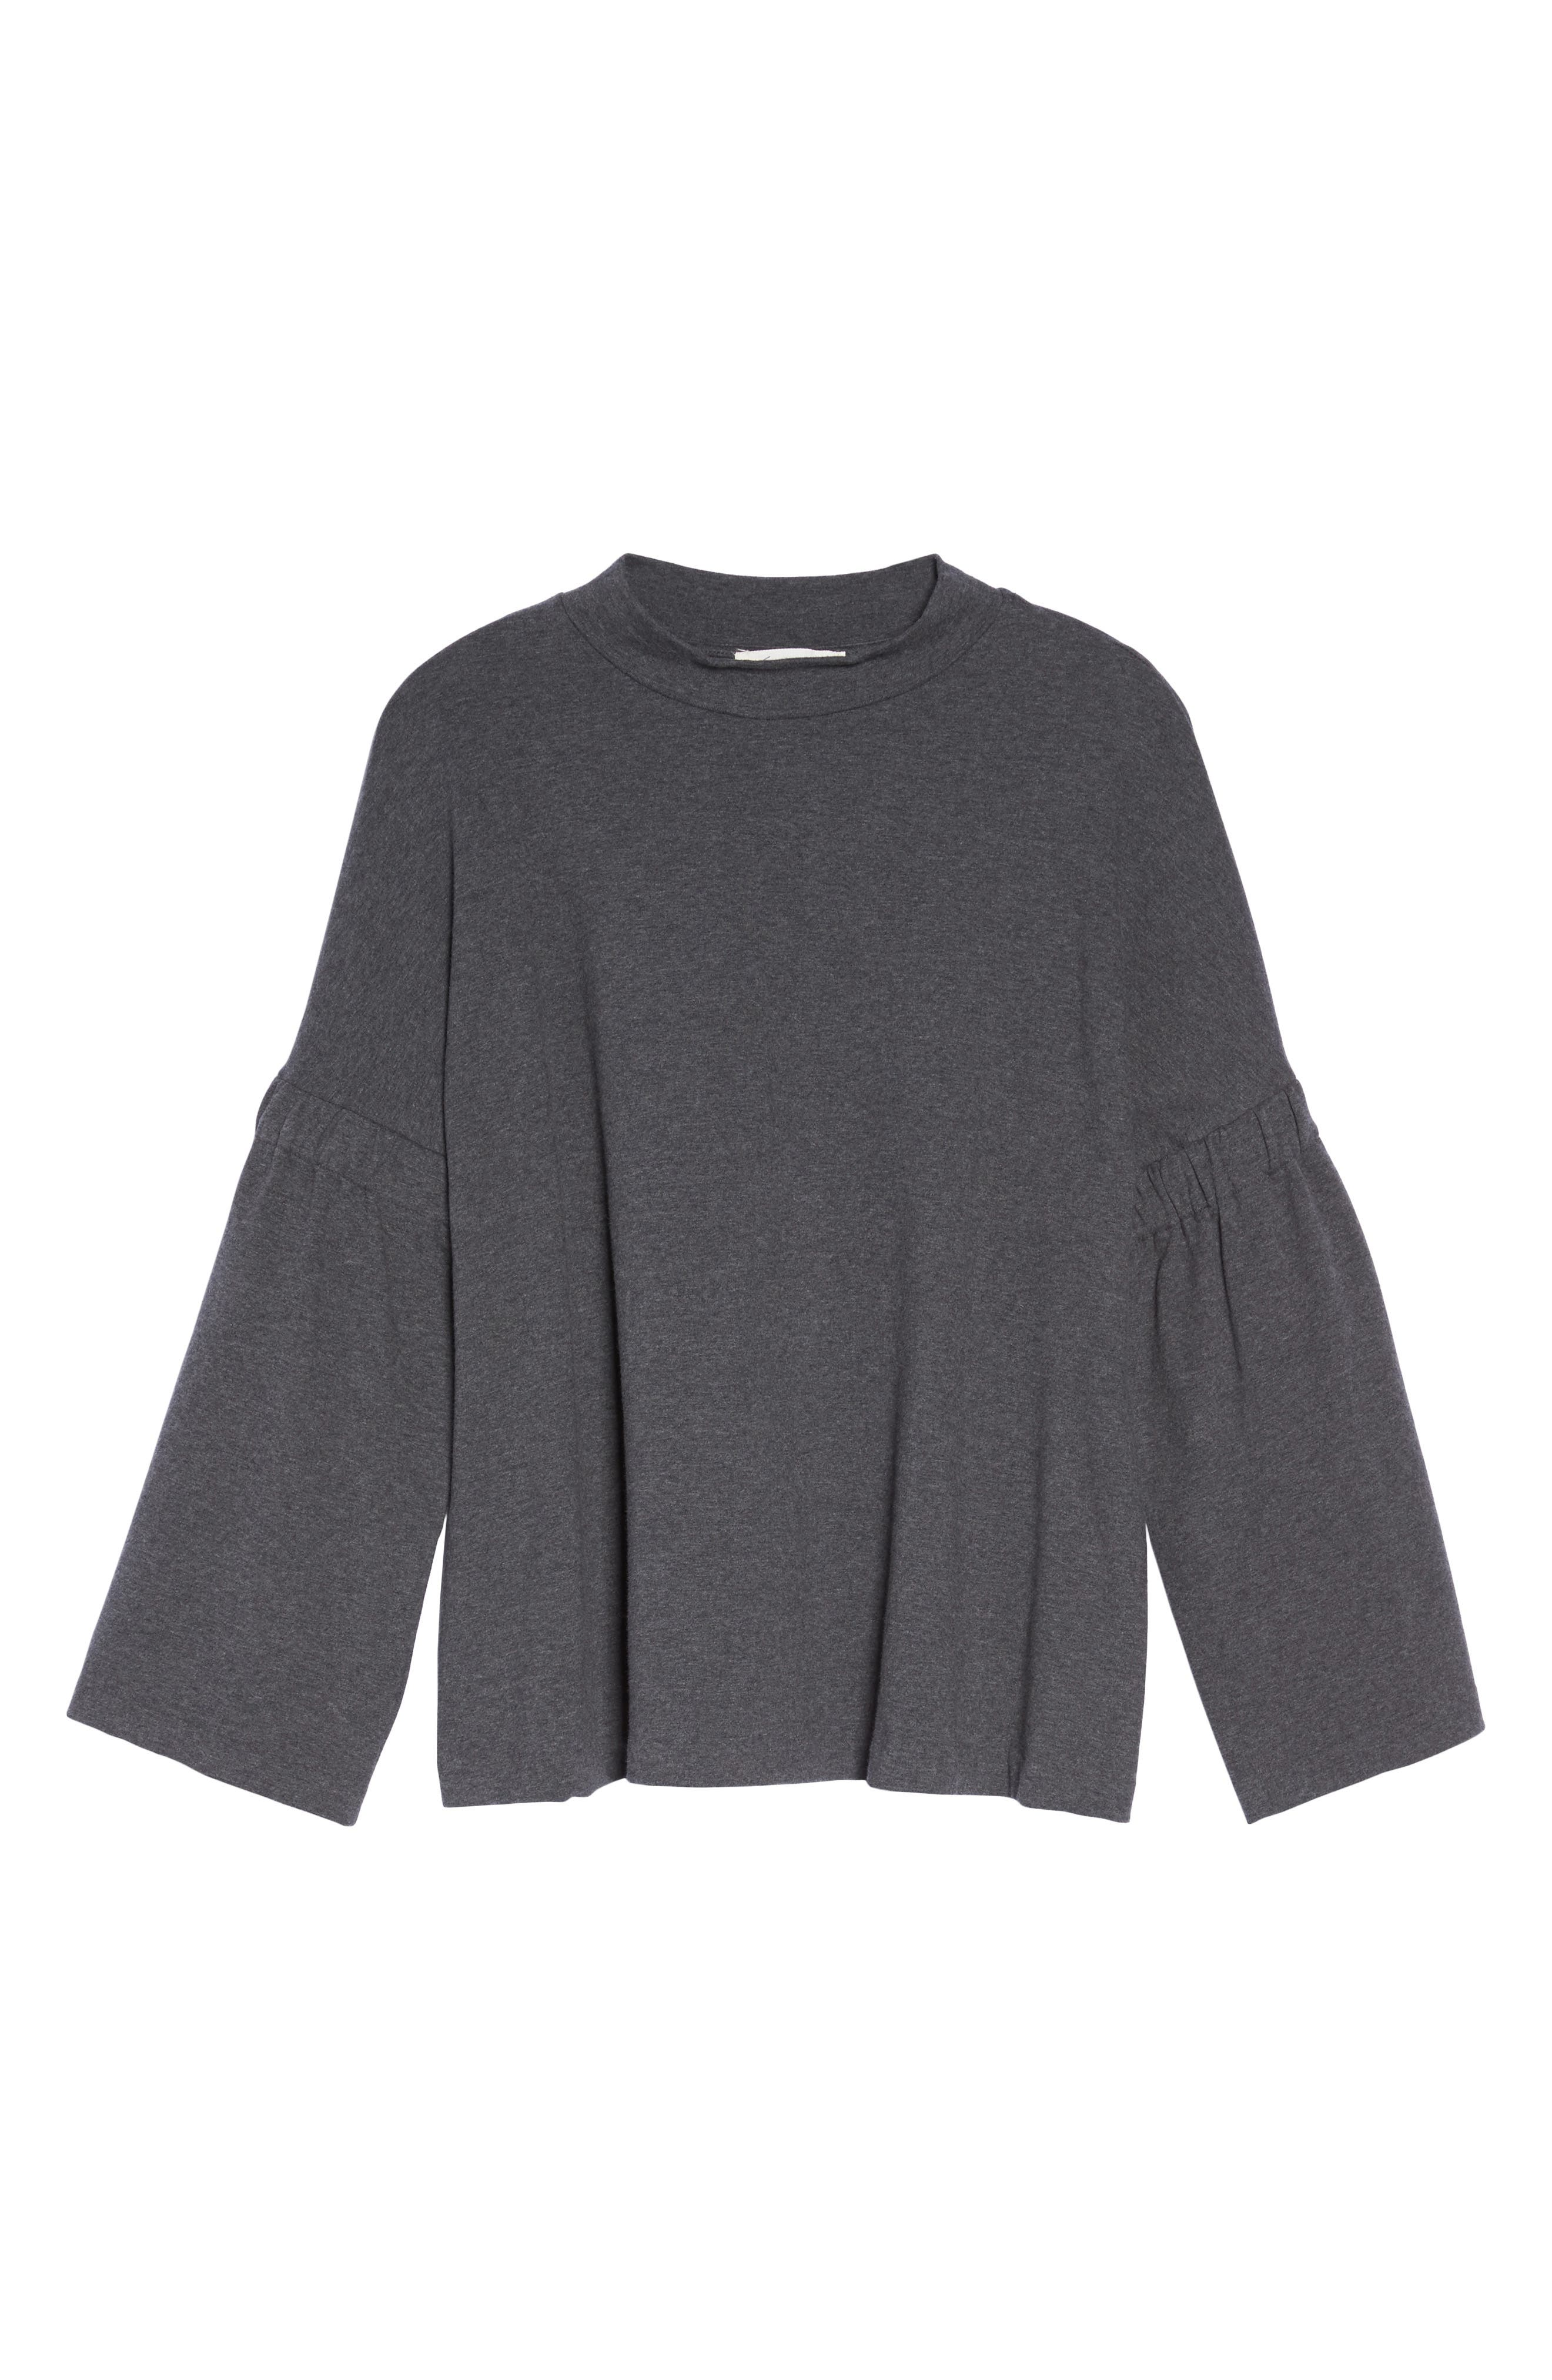 Bell Sleeve Top,                             Alternate thumbnail 6, color,                             023